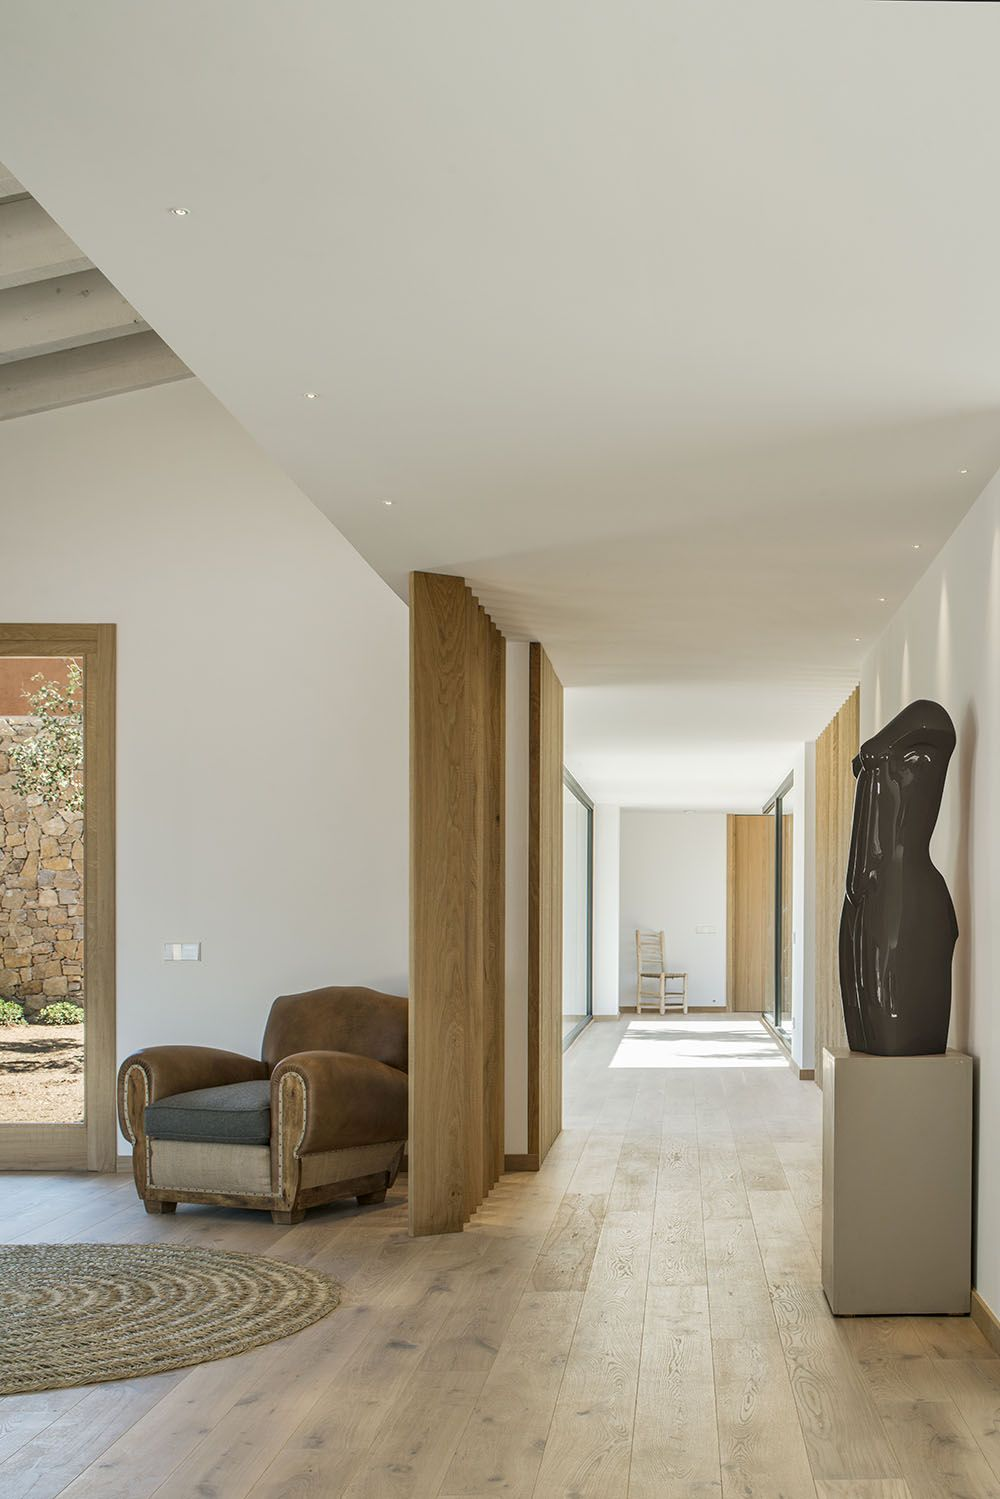 Wood floors throughout create a natural base for the minimalist design.